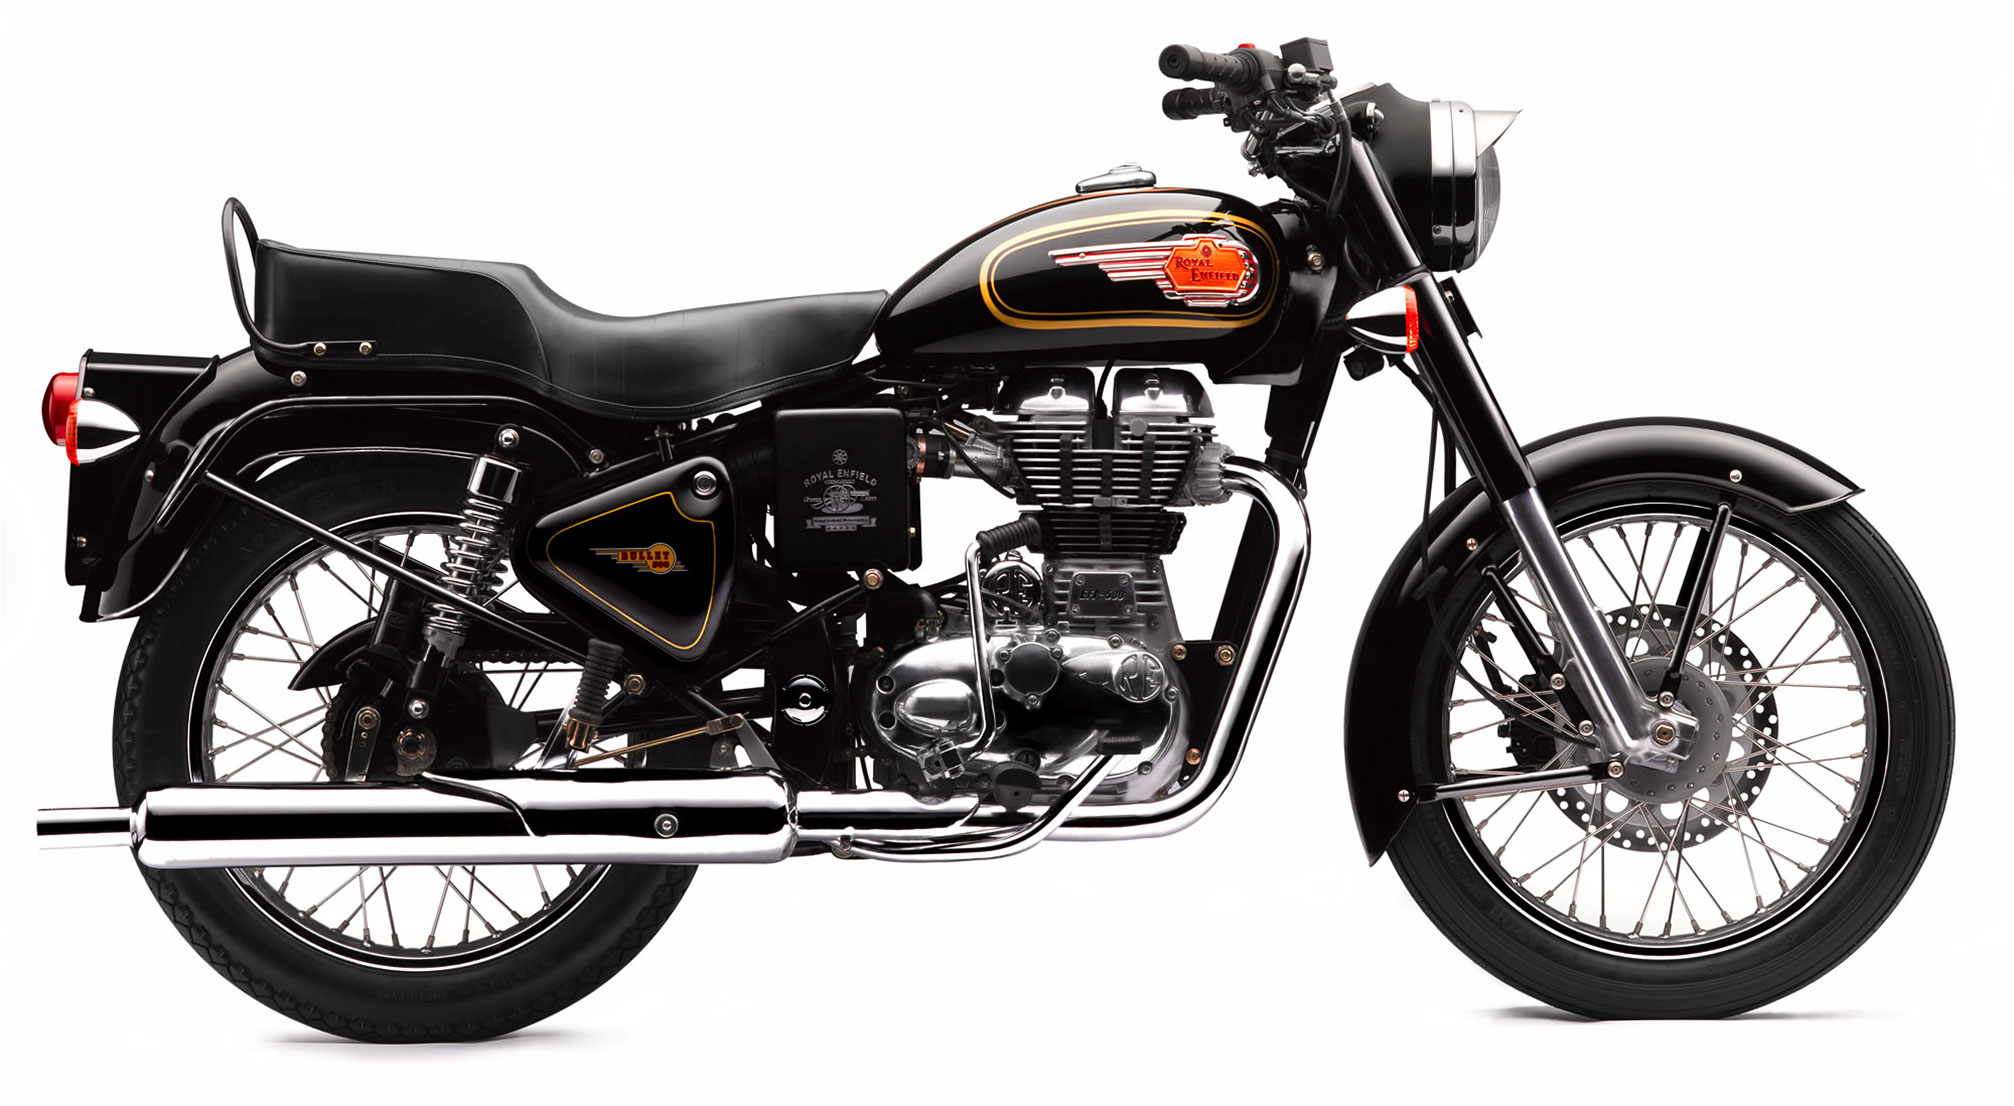 Royal Enfield Bullet 500 Army 1999 images #170672